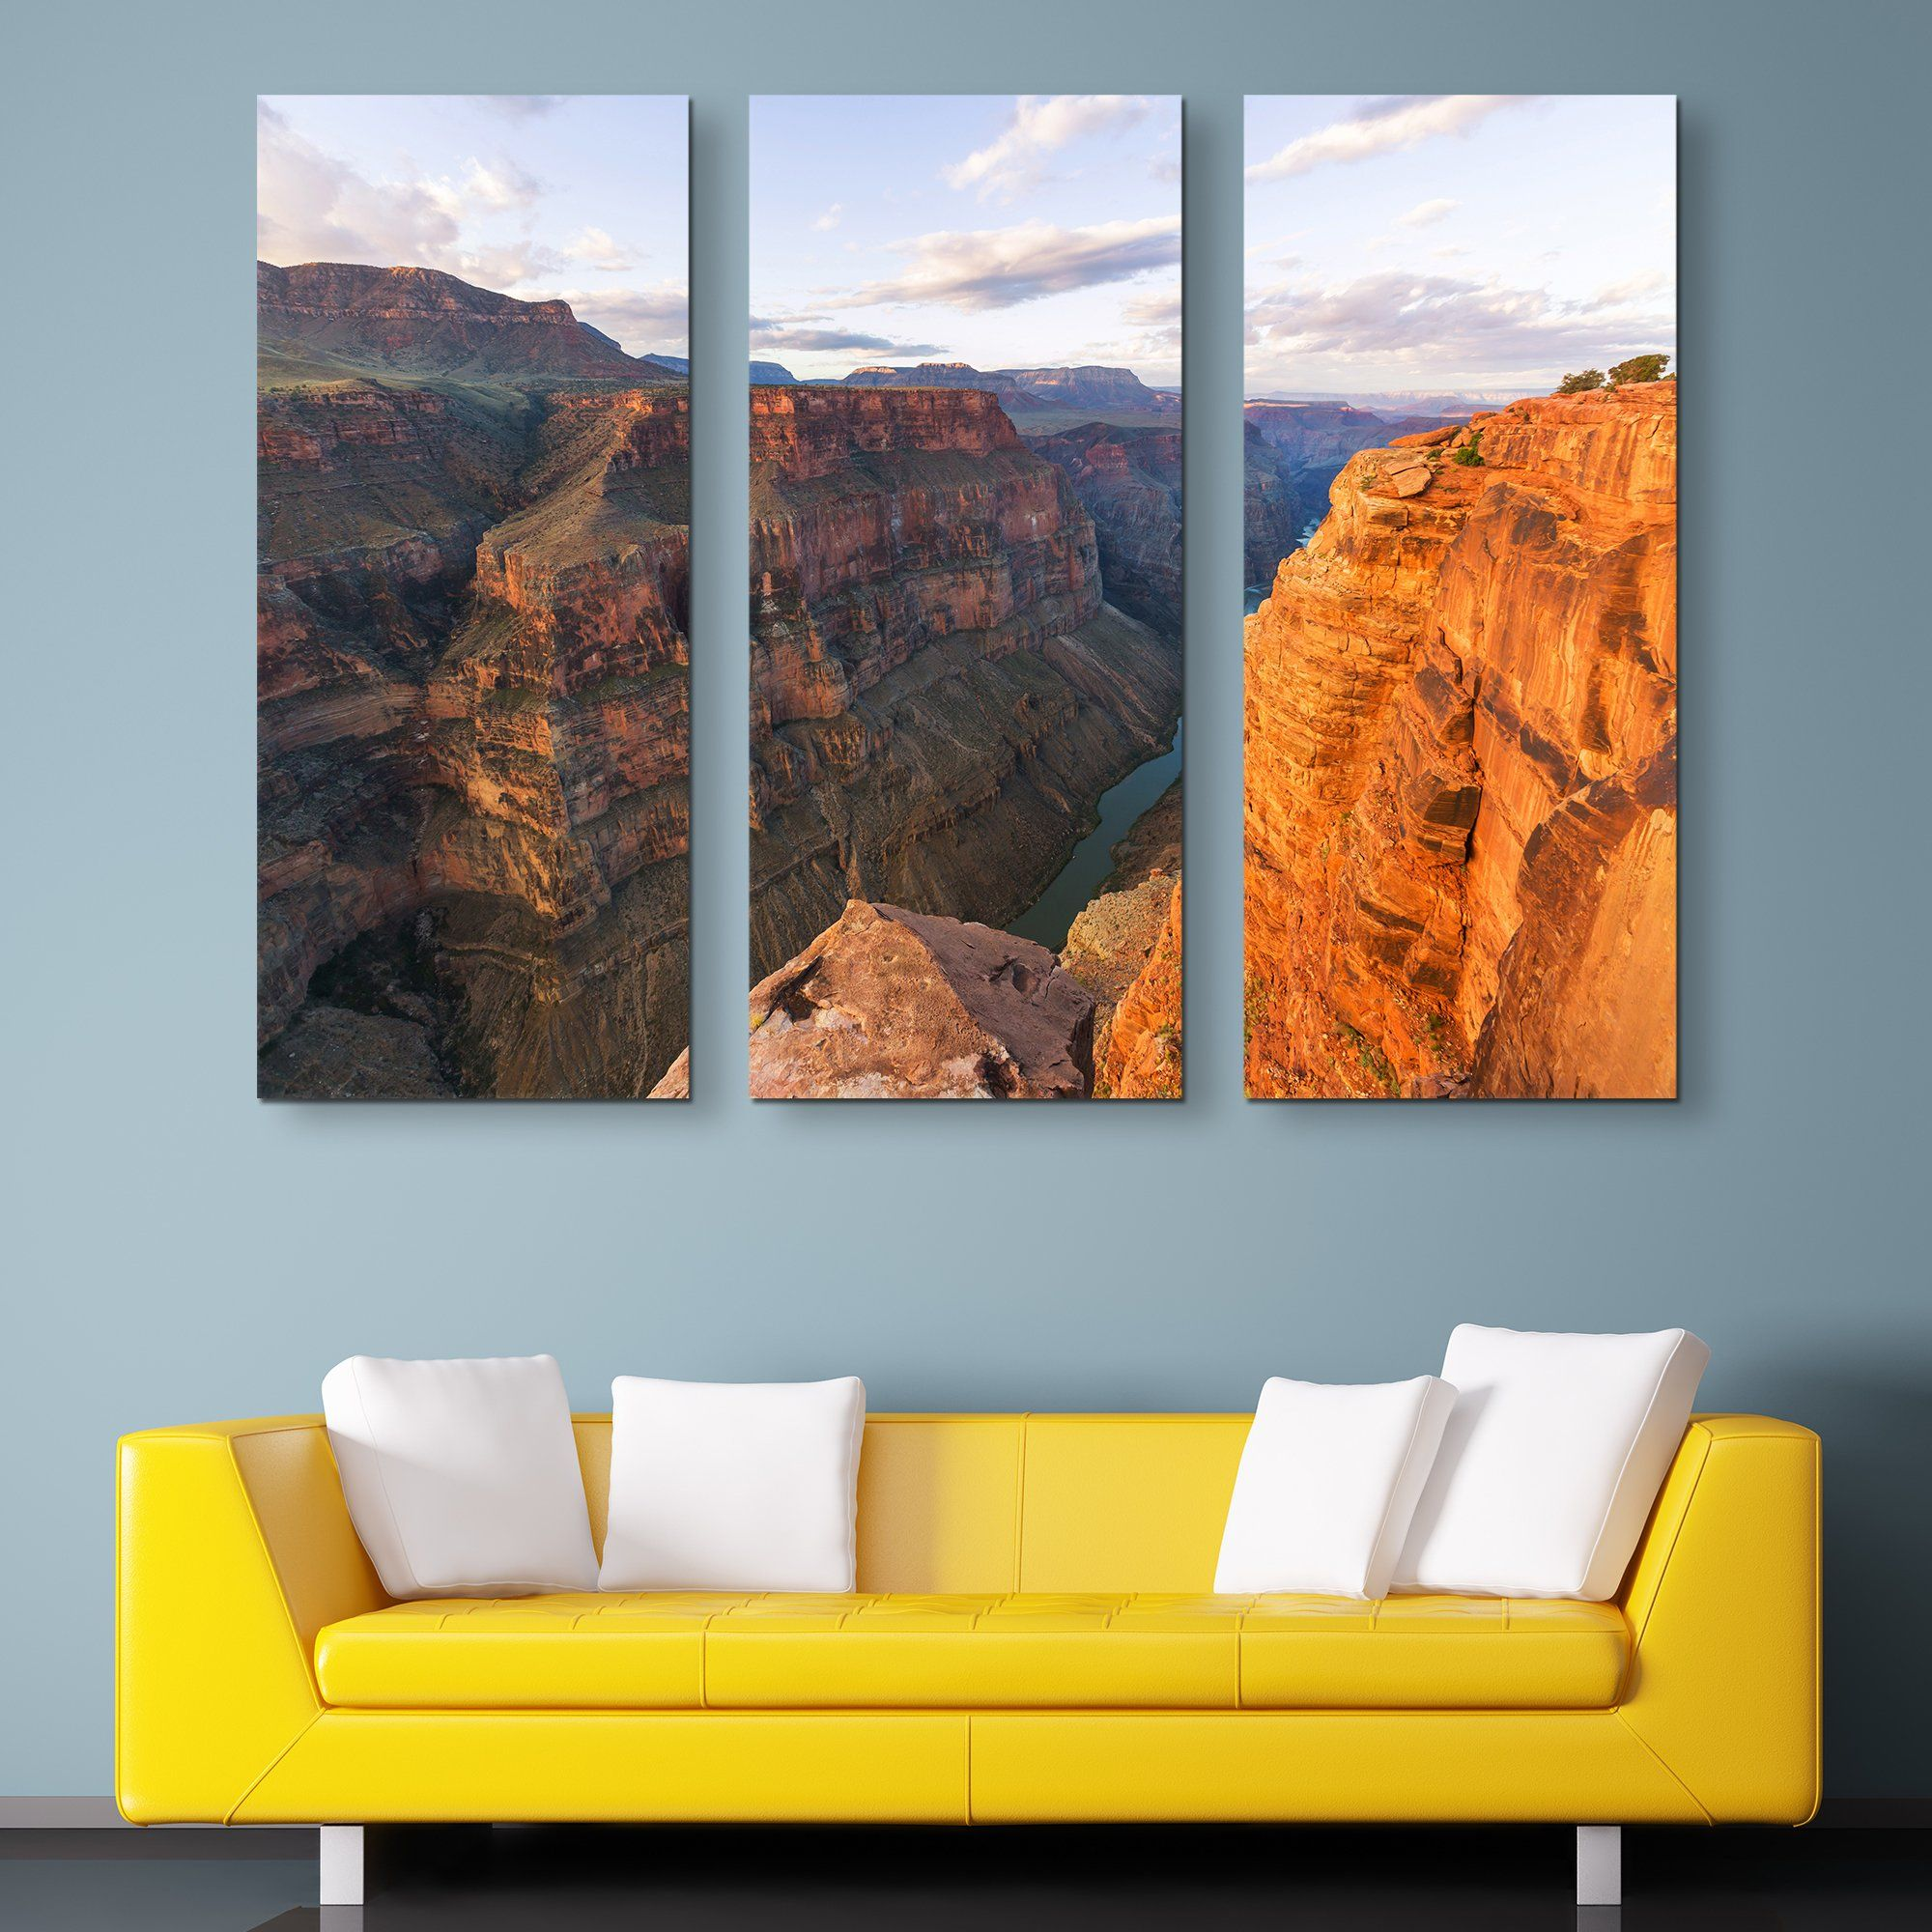 Grand Canyon National Park wall art 3 piece